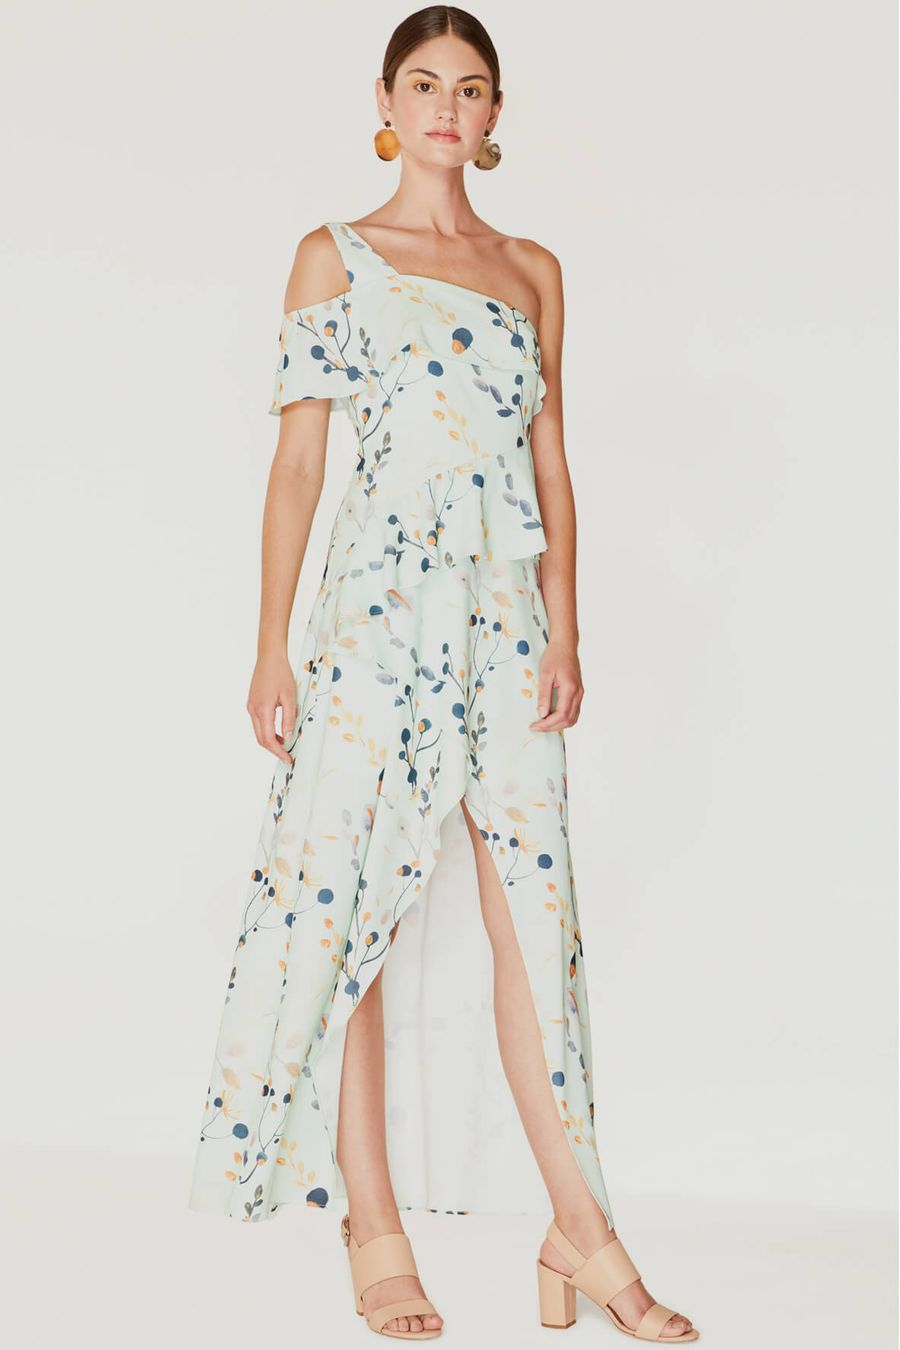 paisie-one-shoulder-floral-dress-with-waist-frills-edited-3